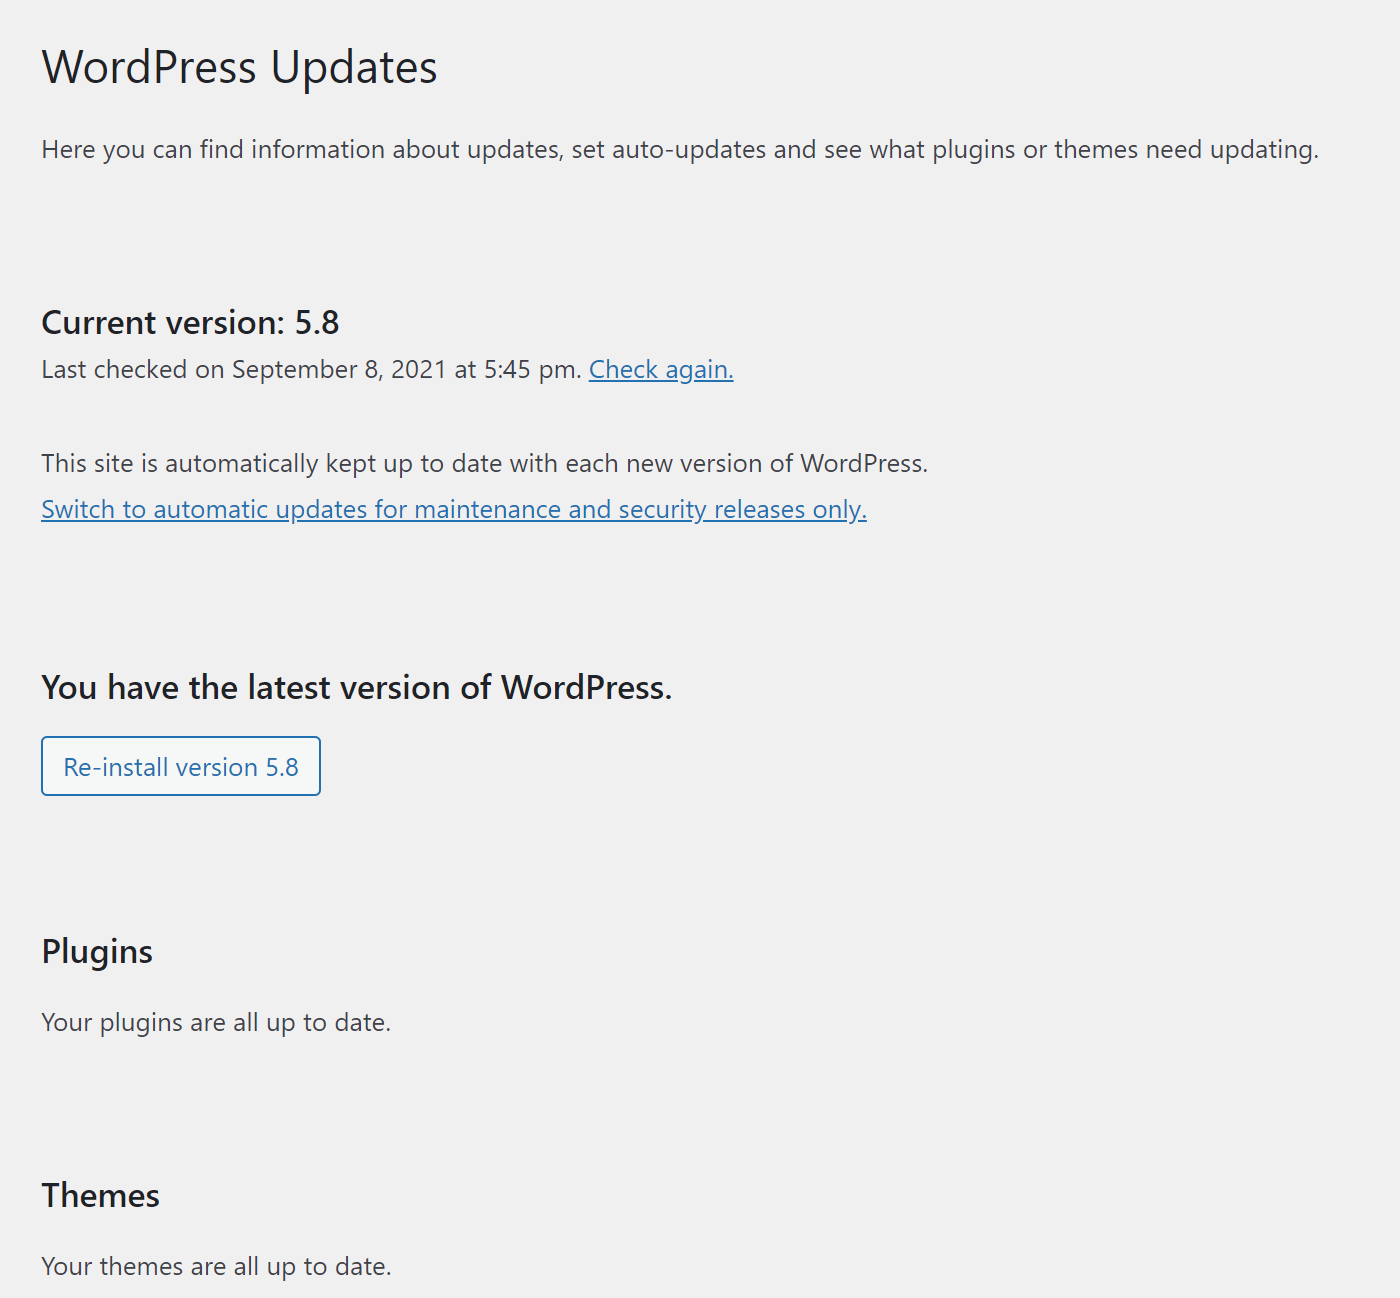 An example of summarized WordPress updates, a simple way to protect a site from XSS attacks.